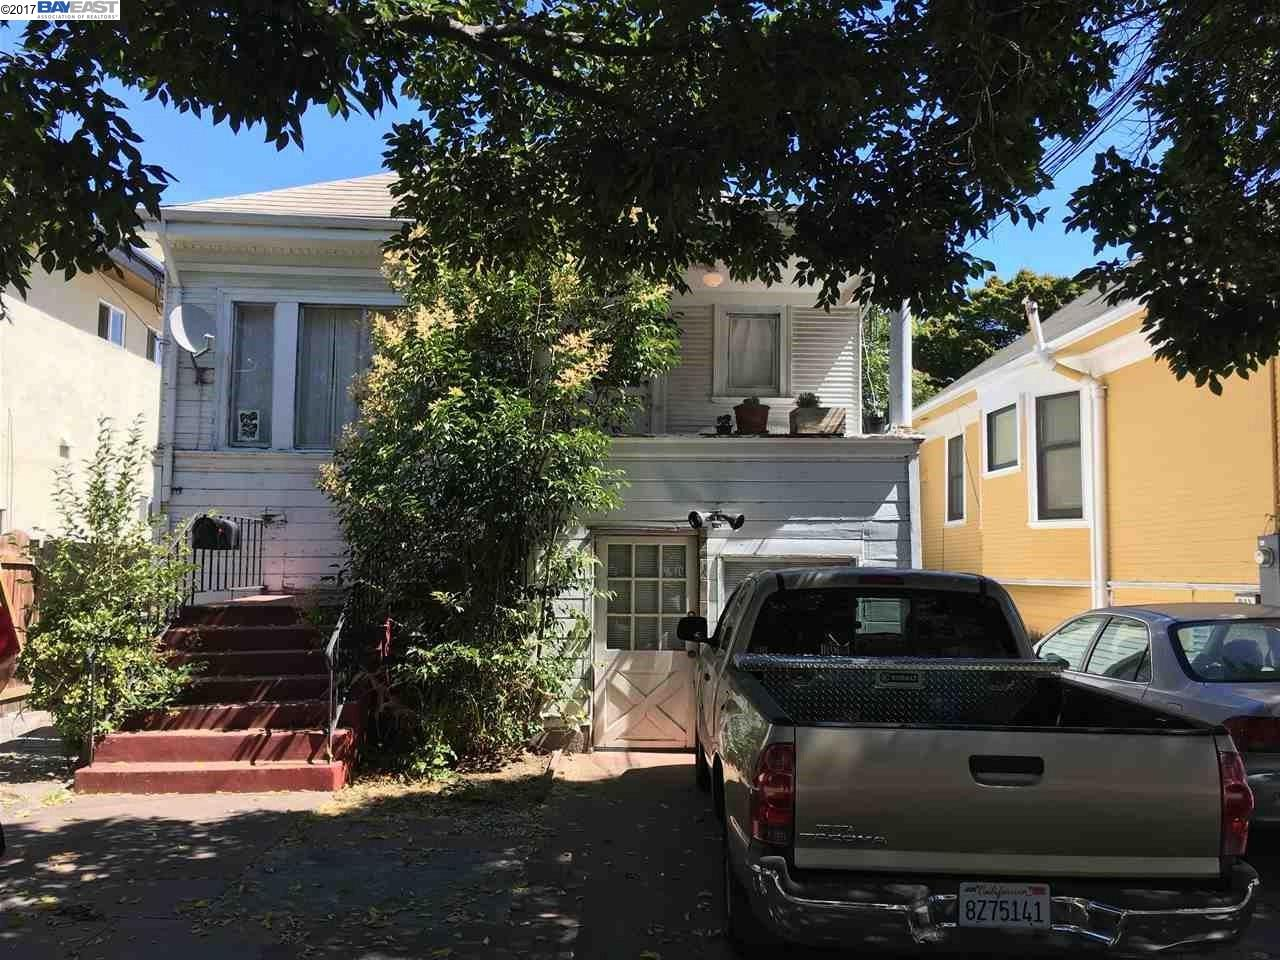 462 37Th St, OAKLAND, CA 94609